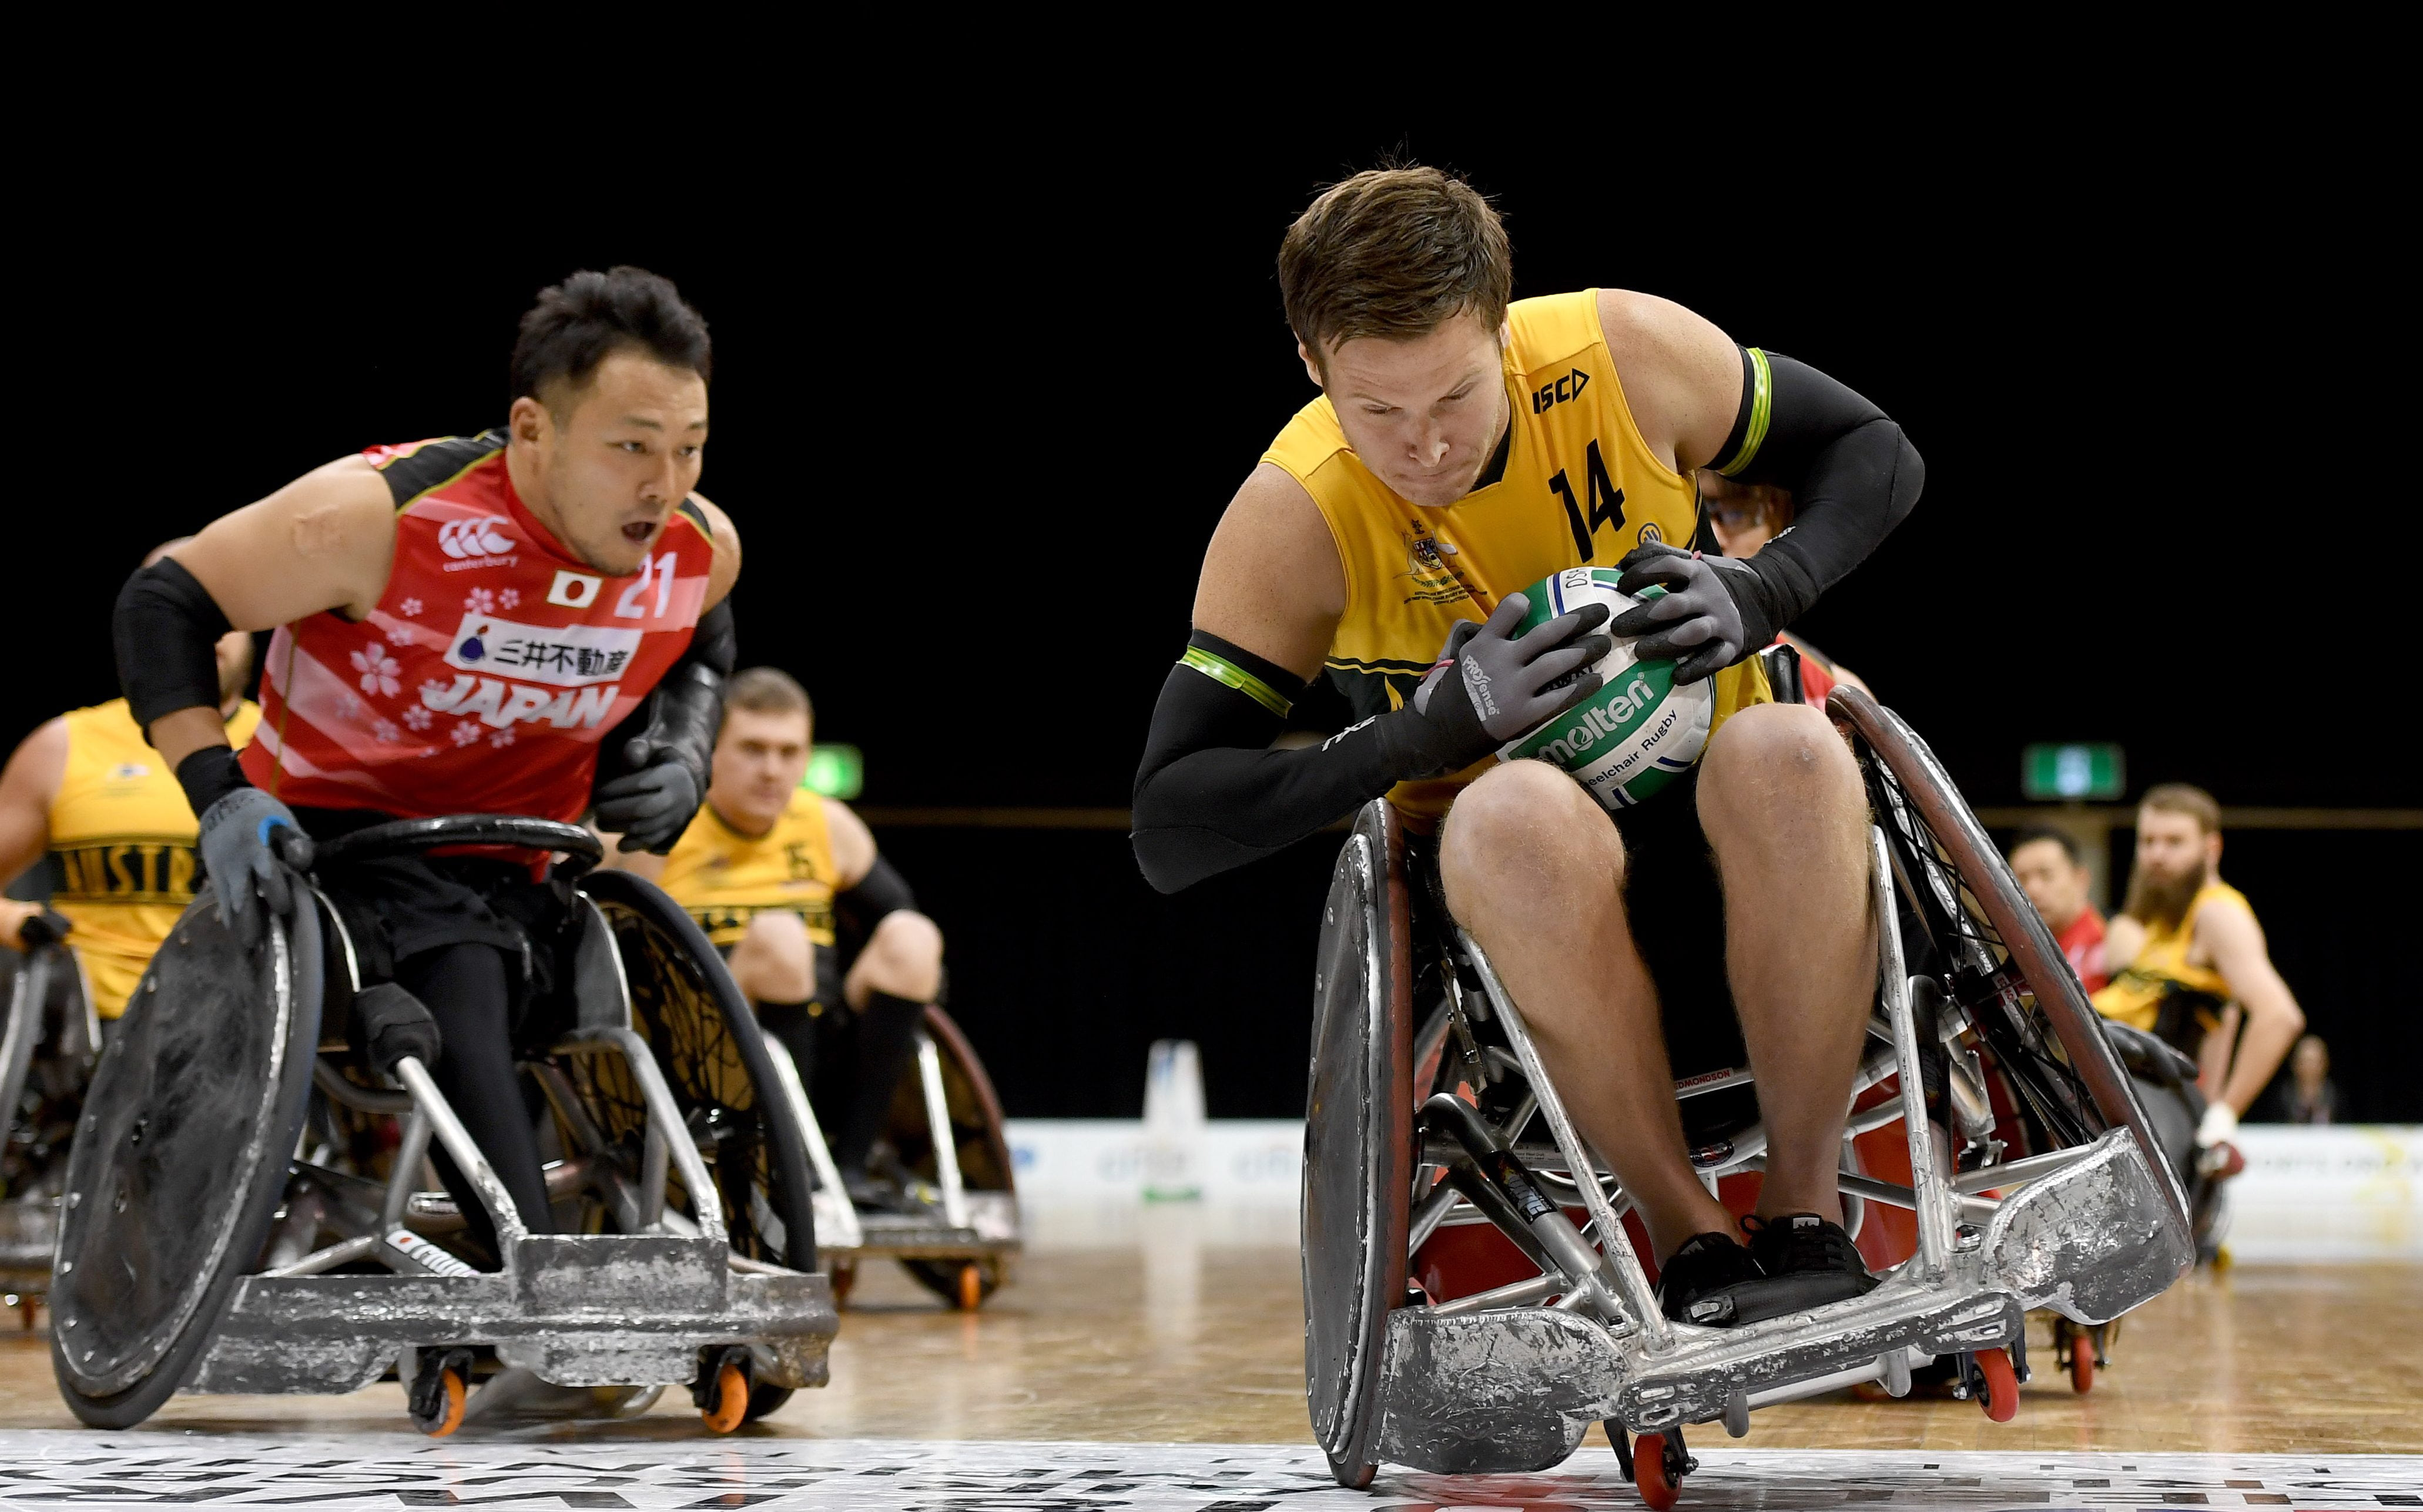 Australia to play Great Britain in semi-final at IWRF Wheelchair Rugby World Championship